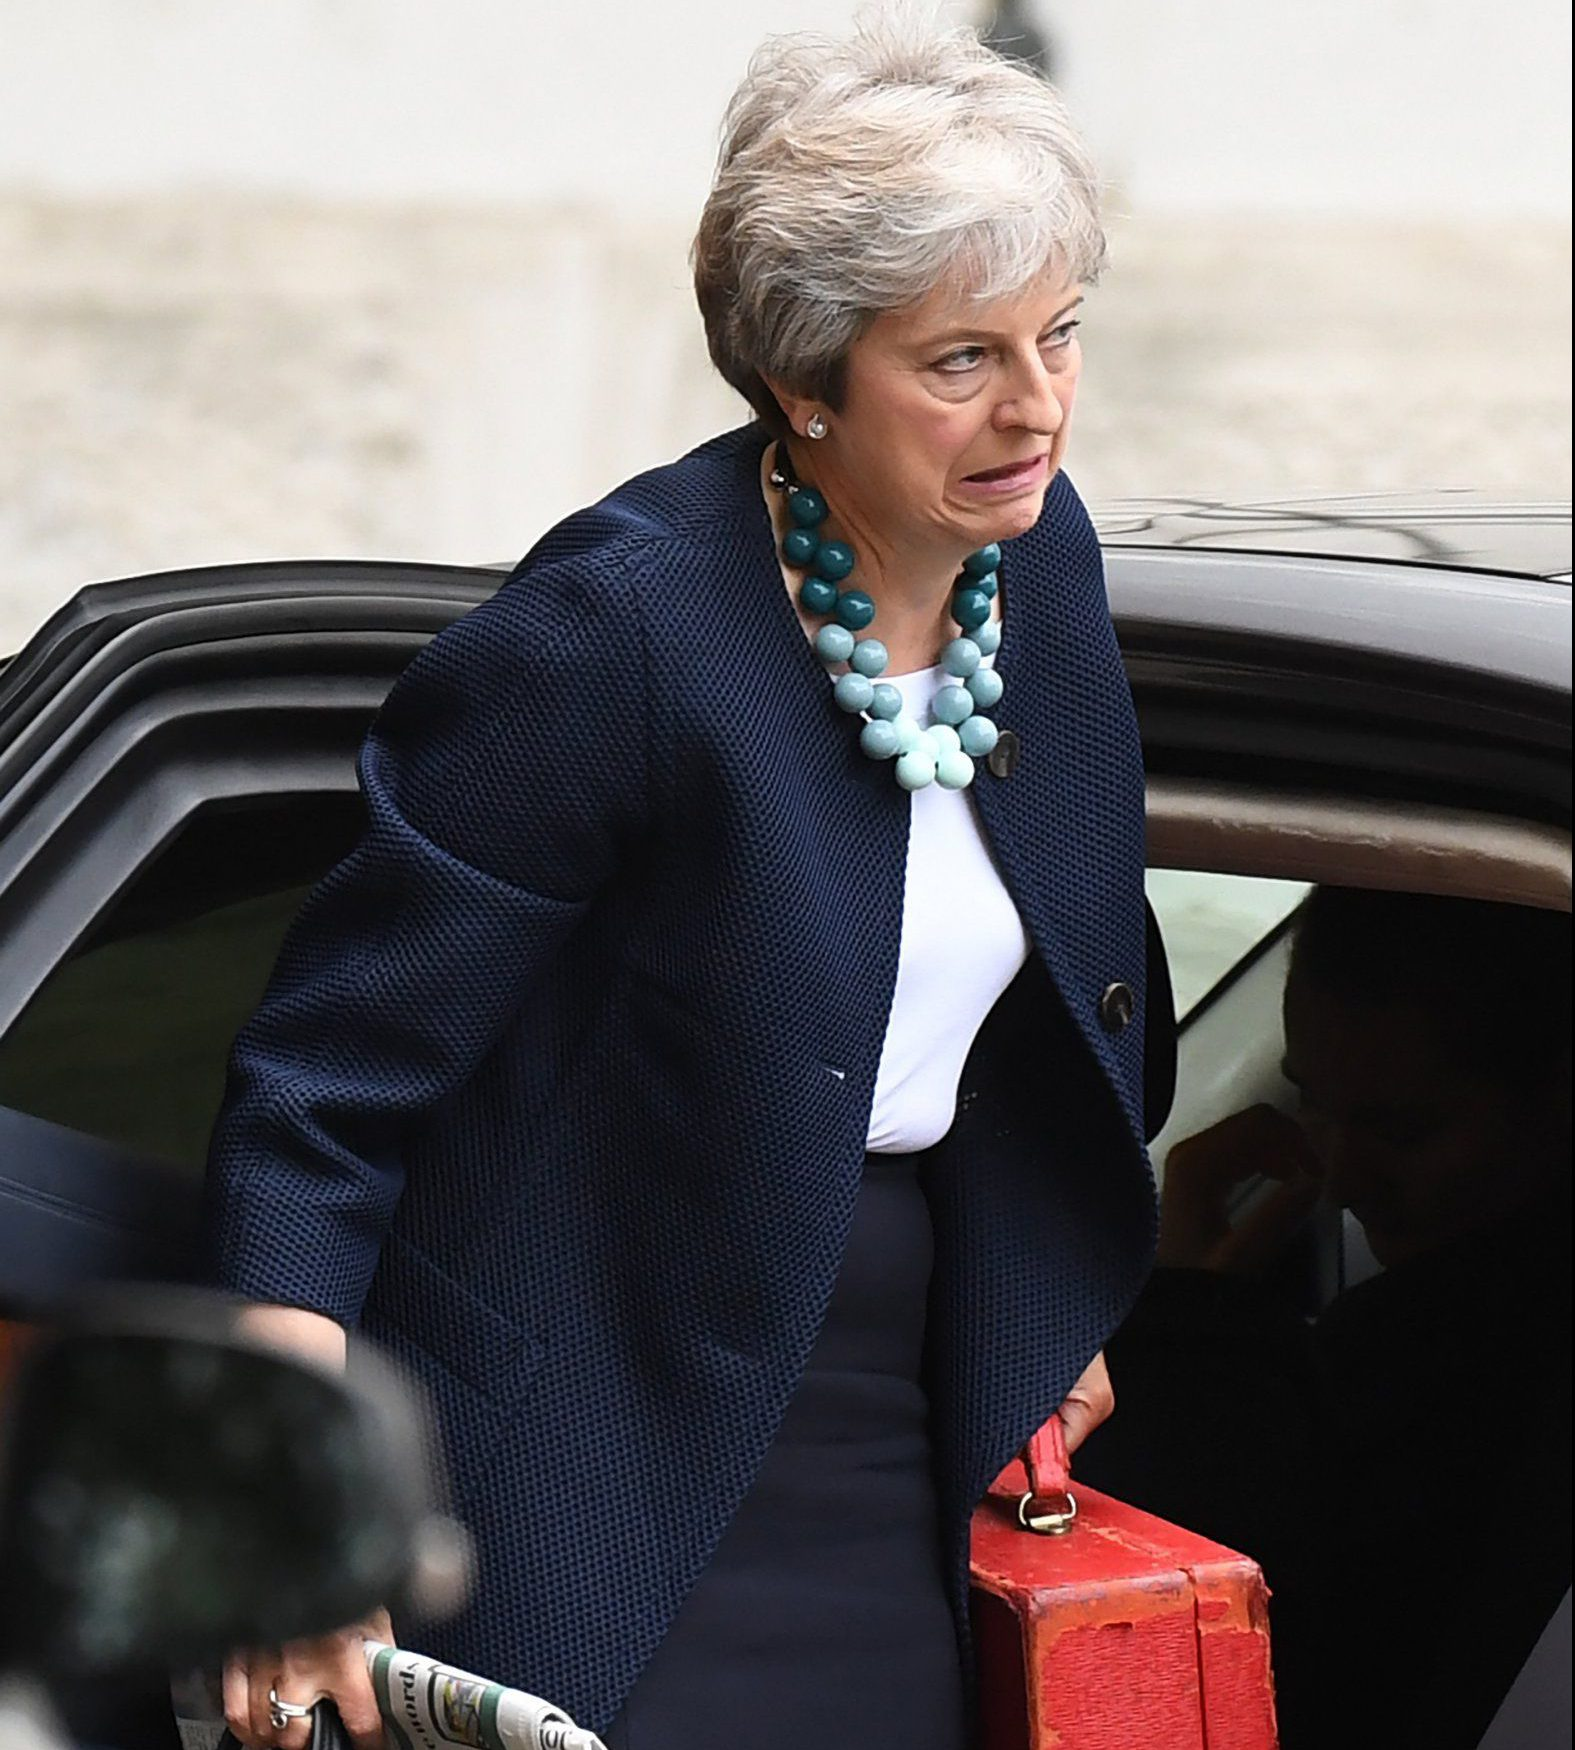 epa07009959 Britain's Prime Minister Theresa May arrives at Downing Street in London, Britain, 10 September 2018. With 200 days to go until the United Kingdom leaves the European Union, dub bed Brexit, the British cabinet will hold a meeting on 11 September 2018. EPA/FACUNDO ARRIZABALAGA